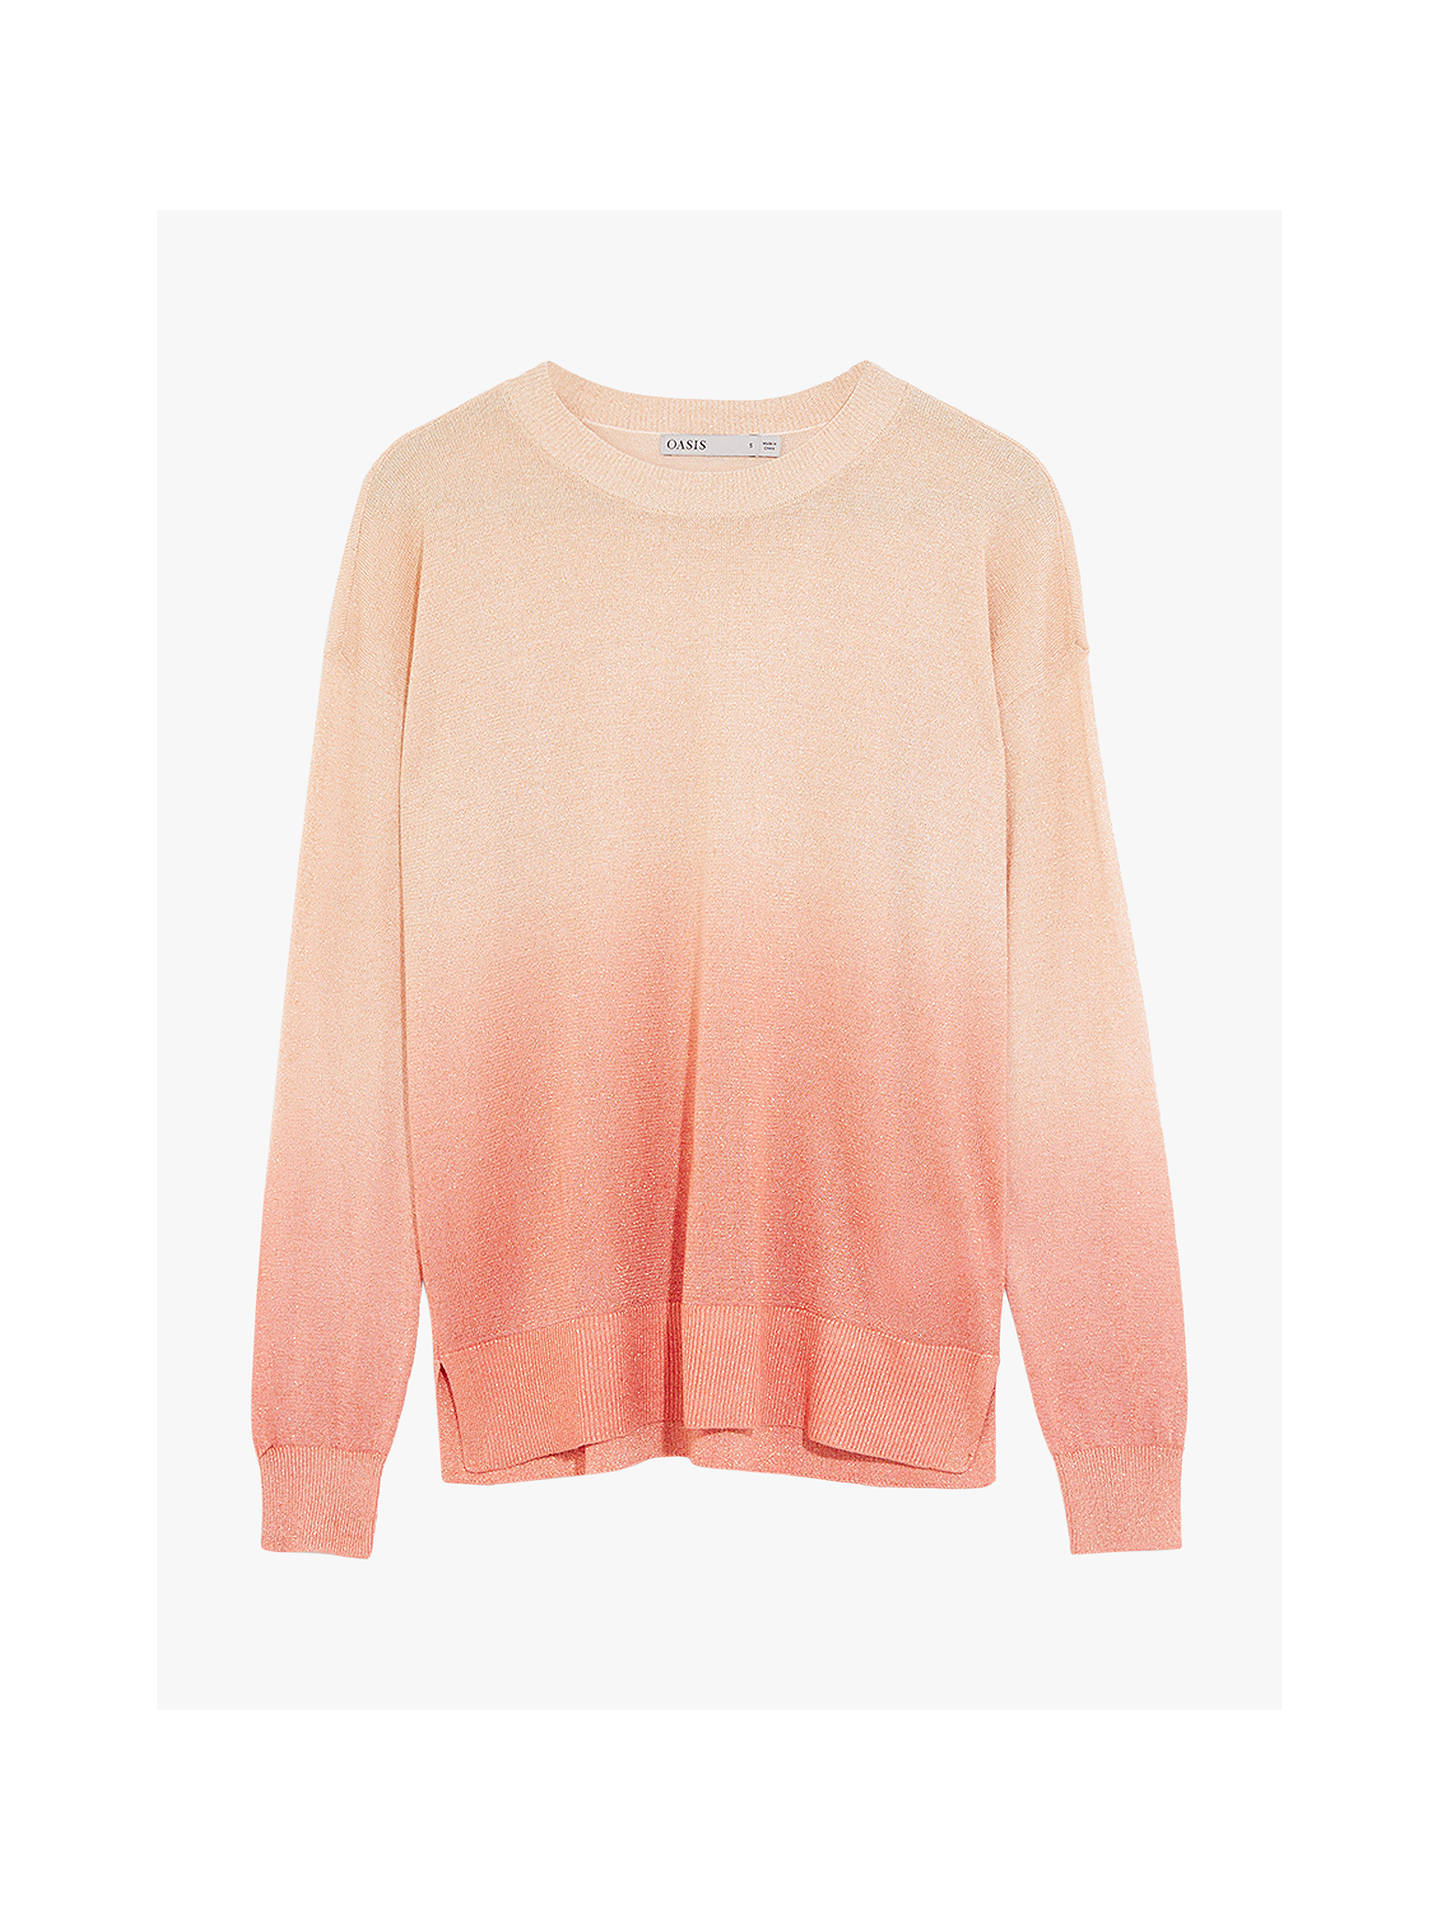 Buy Oasis Ombre Sparkle Jumper, Rose Gold, S Online at johnlewis.com